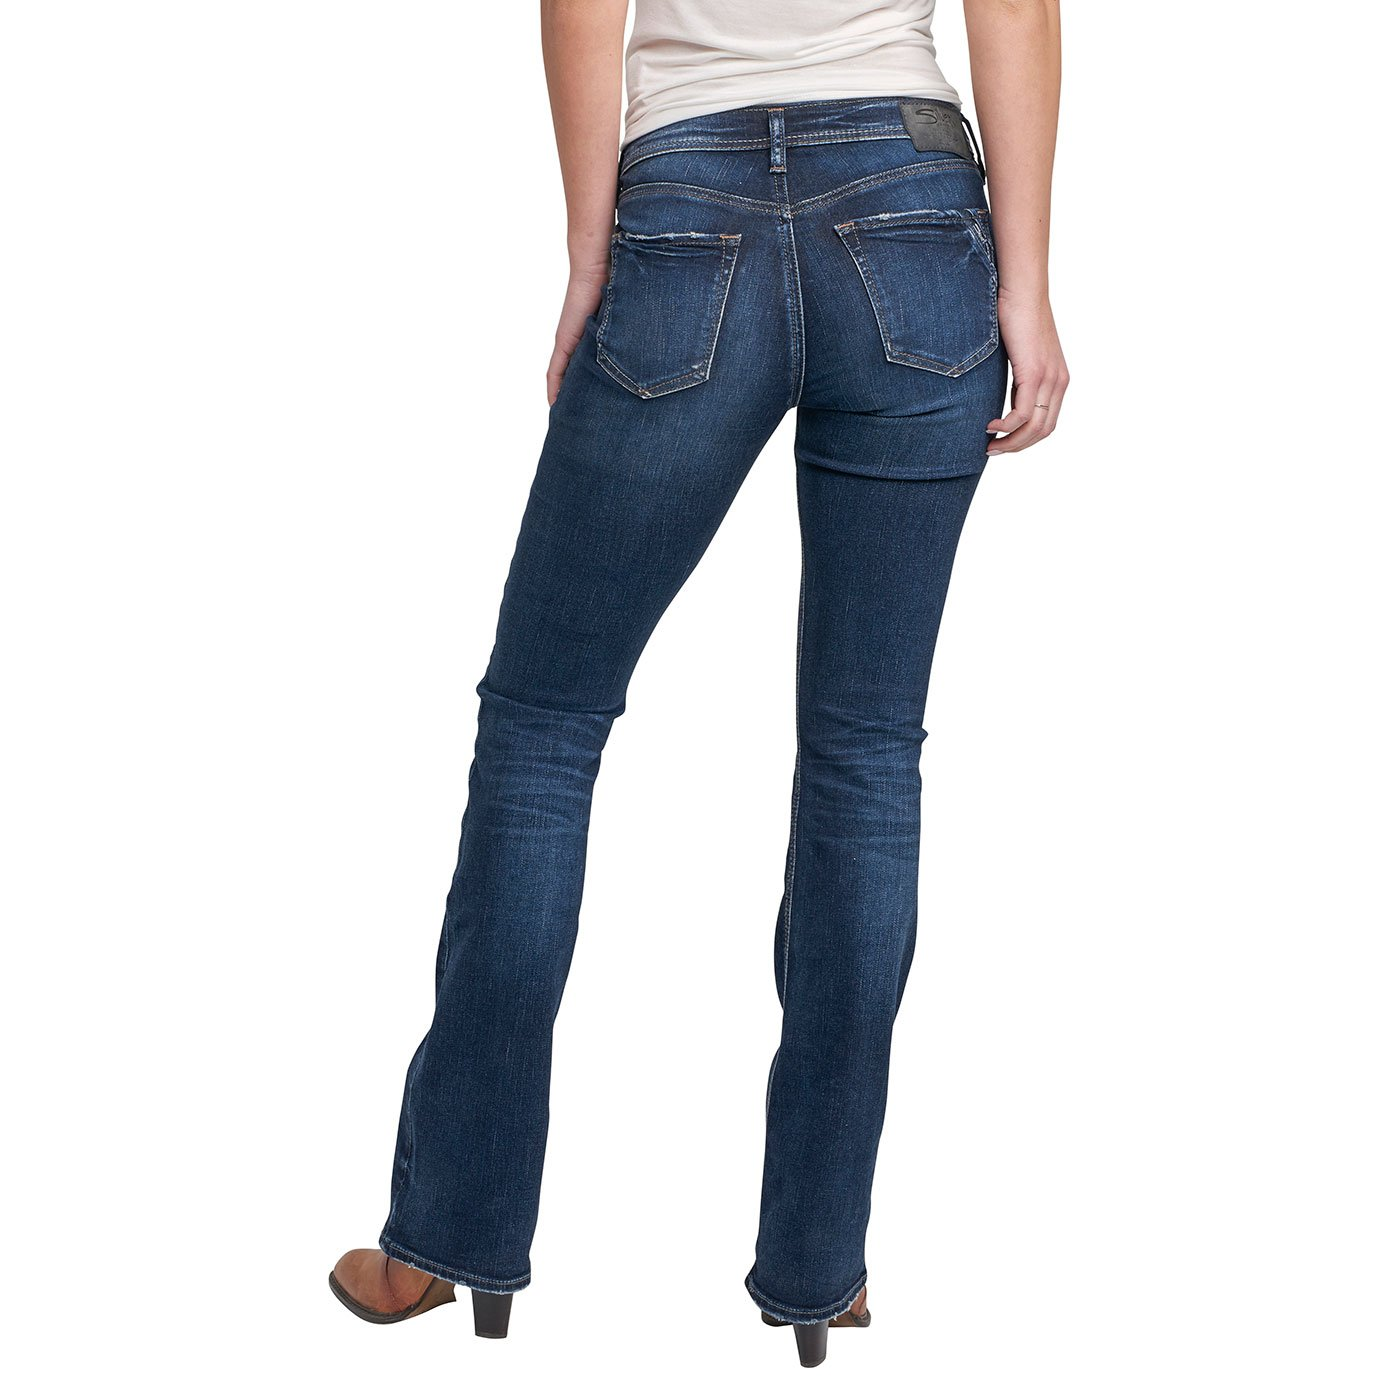 Amazon.com: Silver Jeans Co. - Jeans Avery rectos de tiro ...